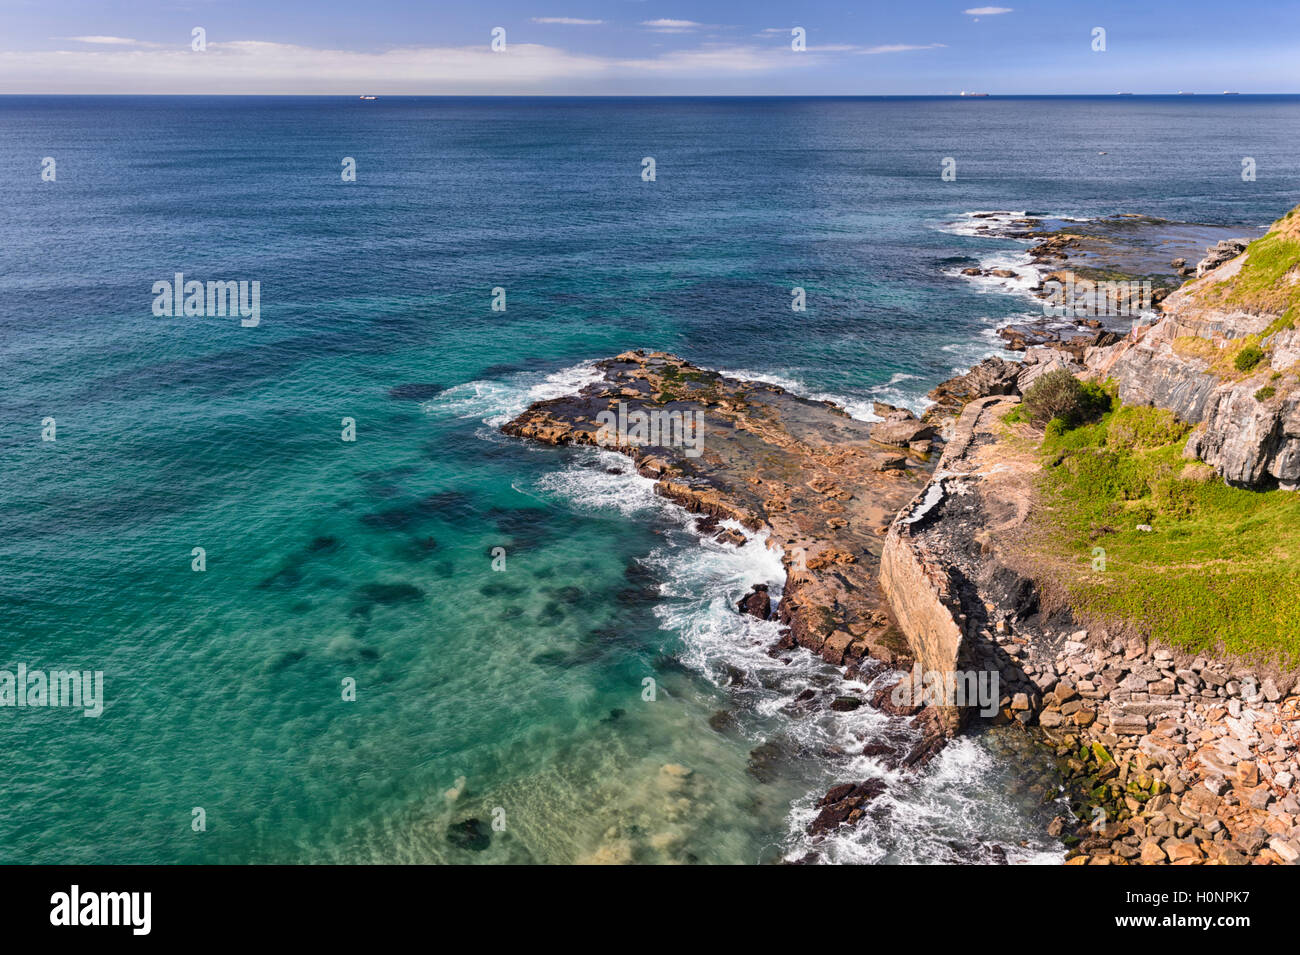 View of the coastline along the Grand Pacific Drive, Coalcliff, Illawarra Region, New South Wales, NSW, Australia - Stock Image